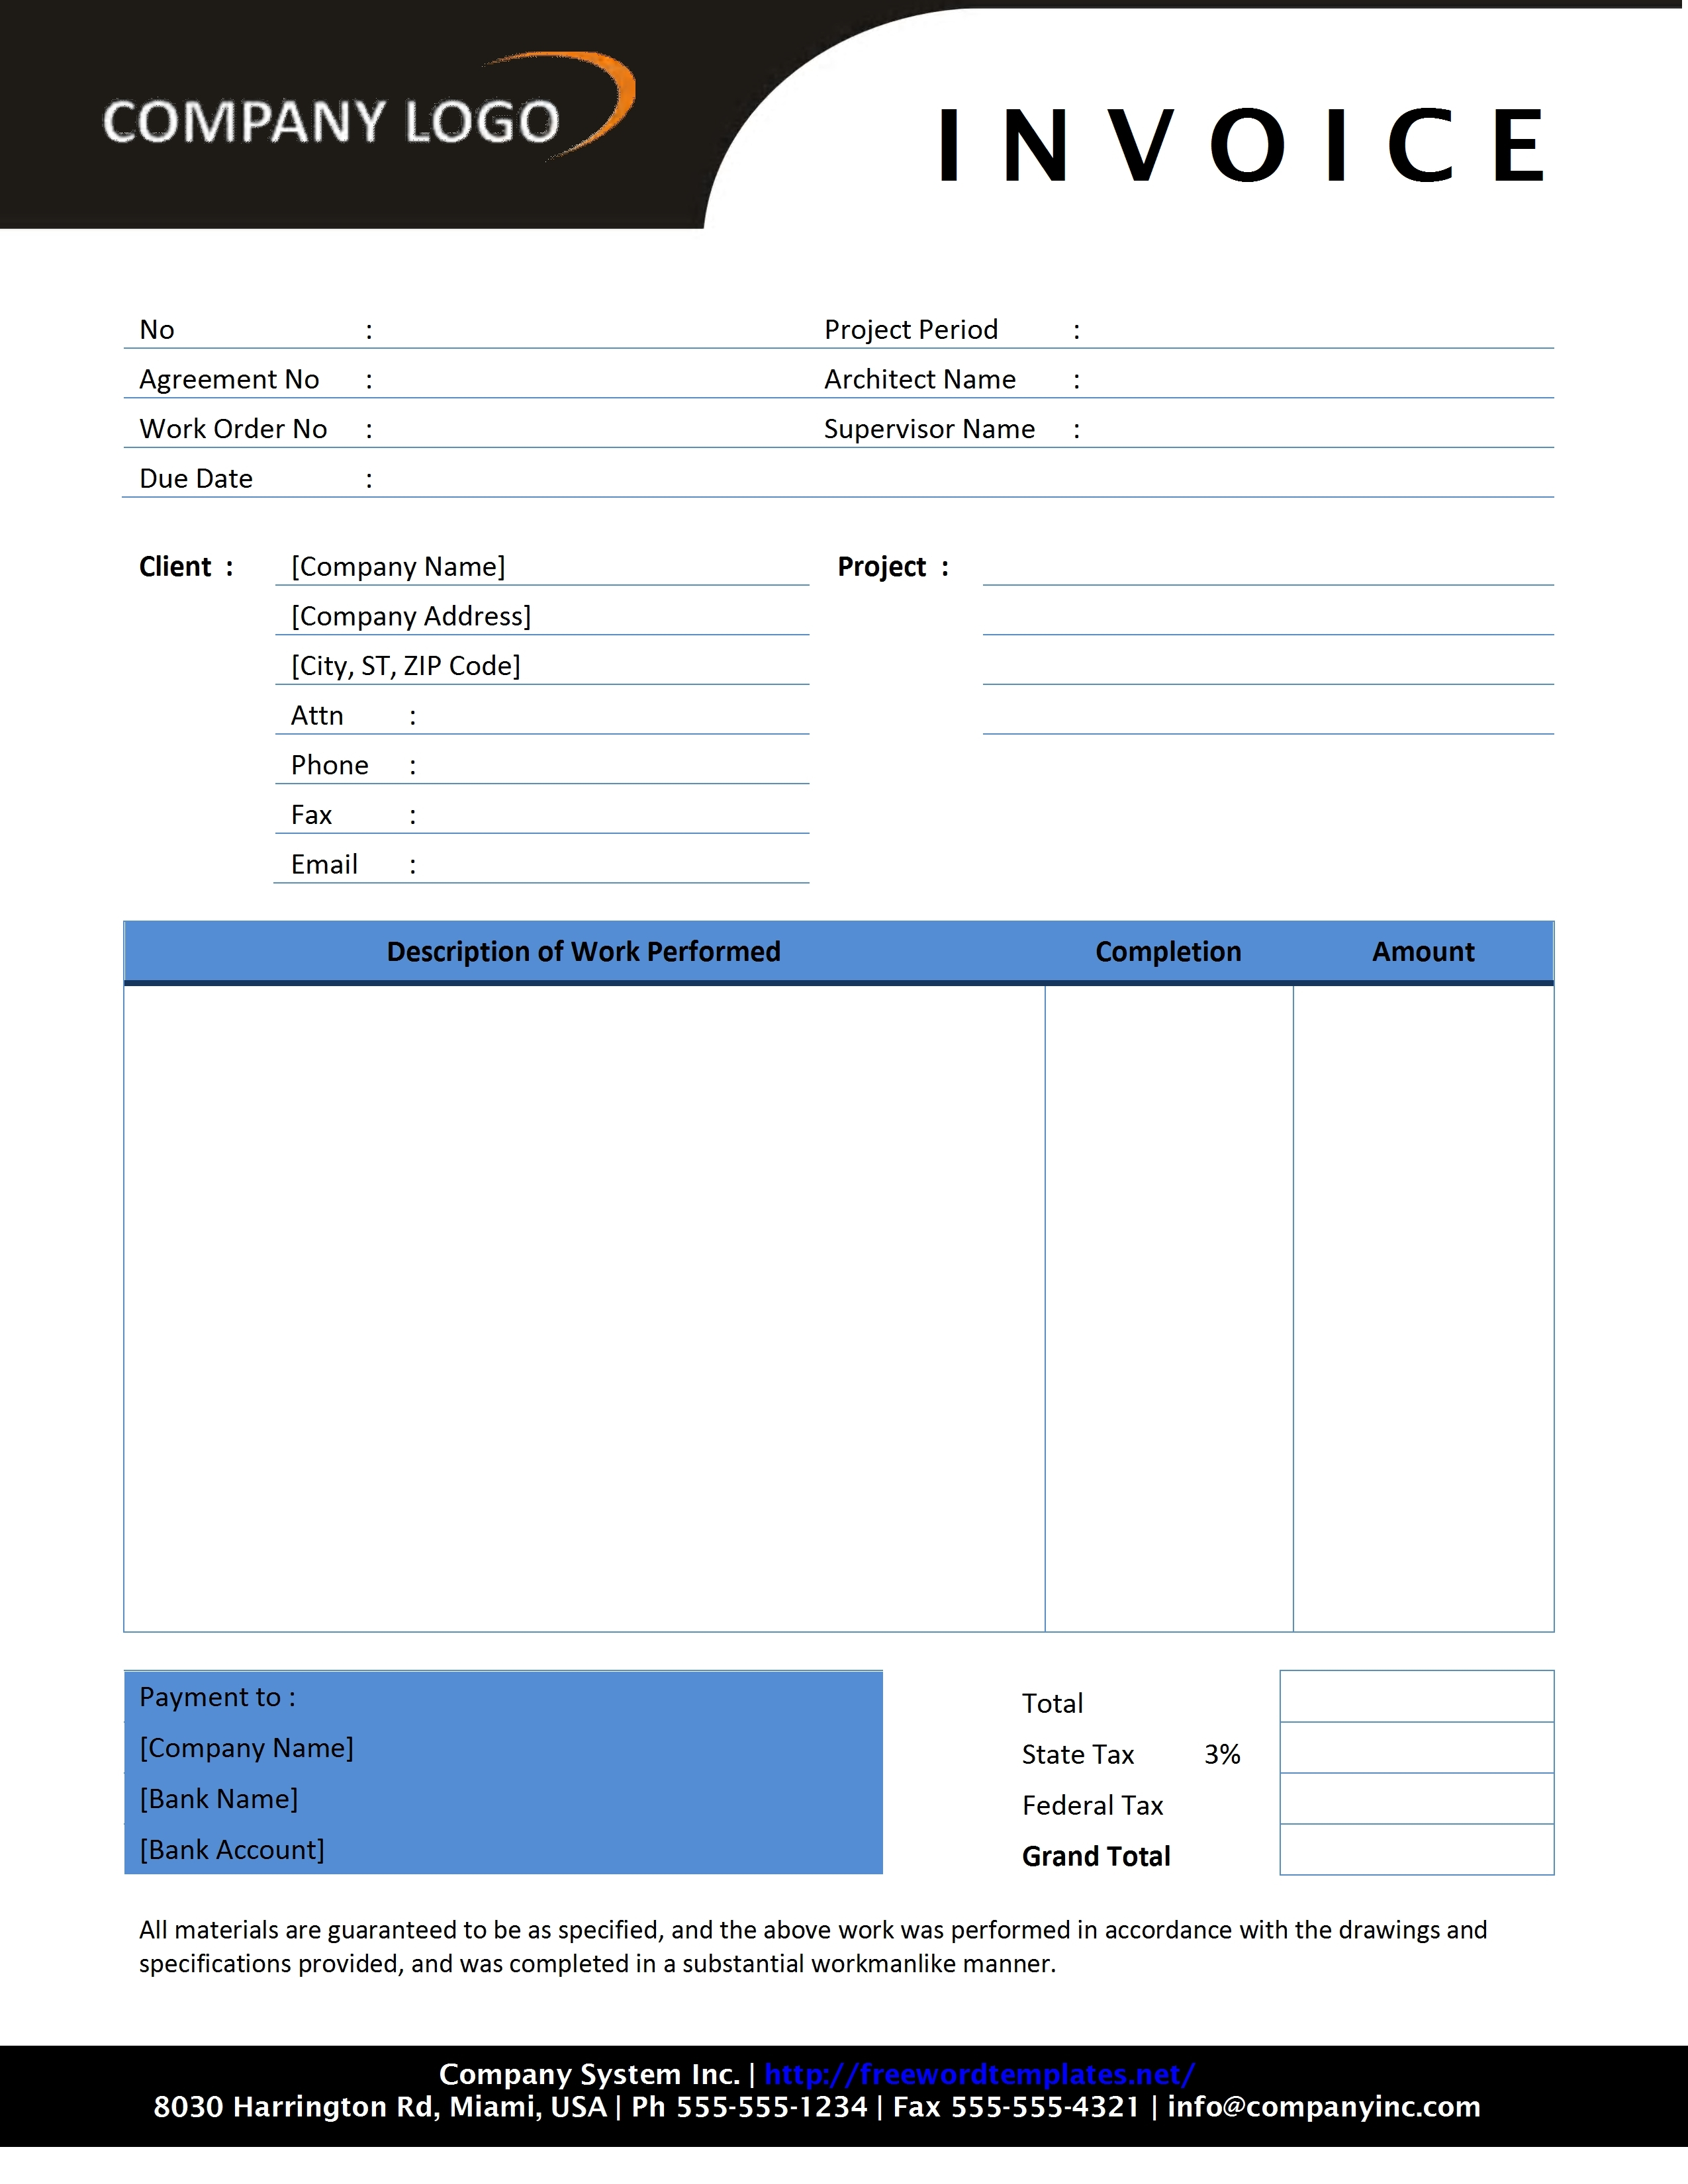 contractor invoice template | free microsoft word templates is an invoice a contract